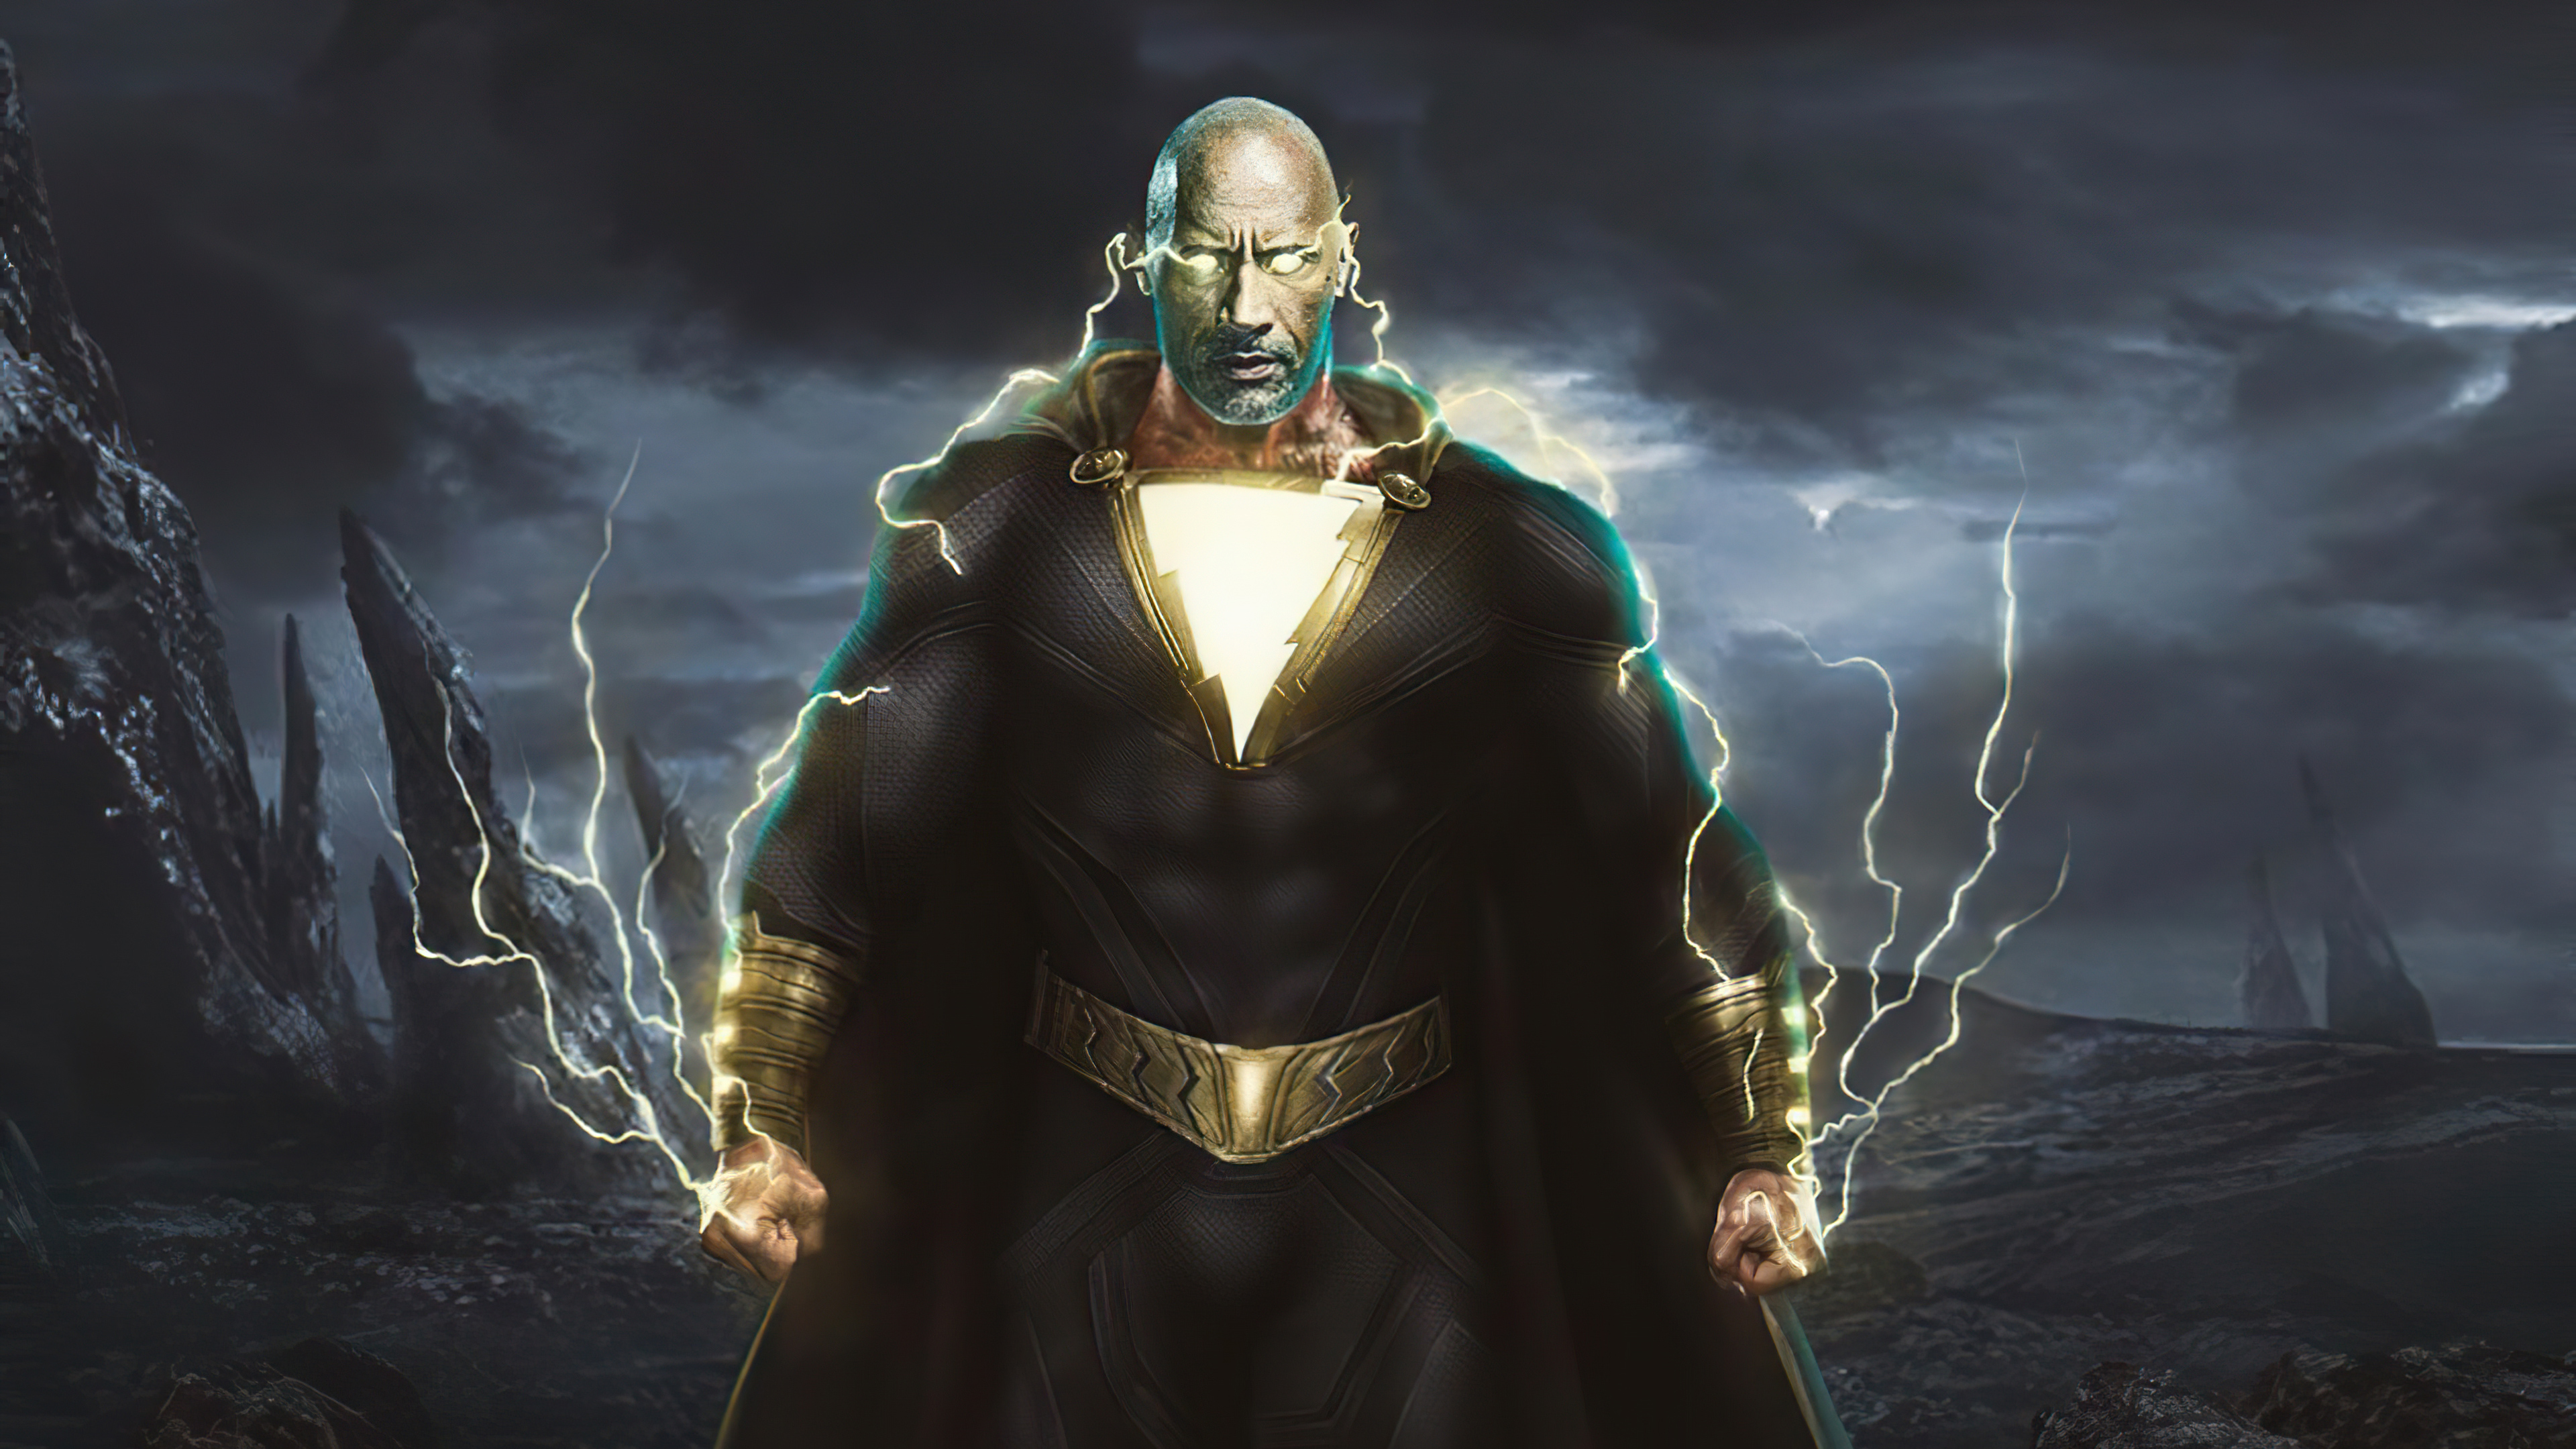 black adam rock 4k hd superheroes 4k wallpapers images backgrounds photos and pictures black adam rock 4k hd superheroes 4k